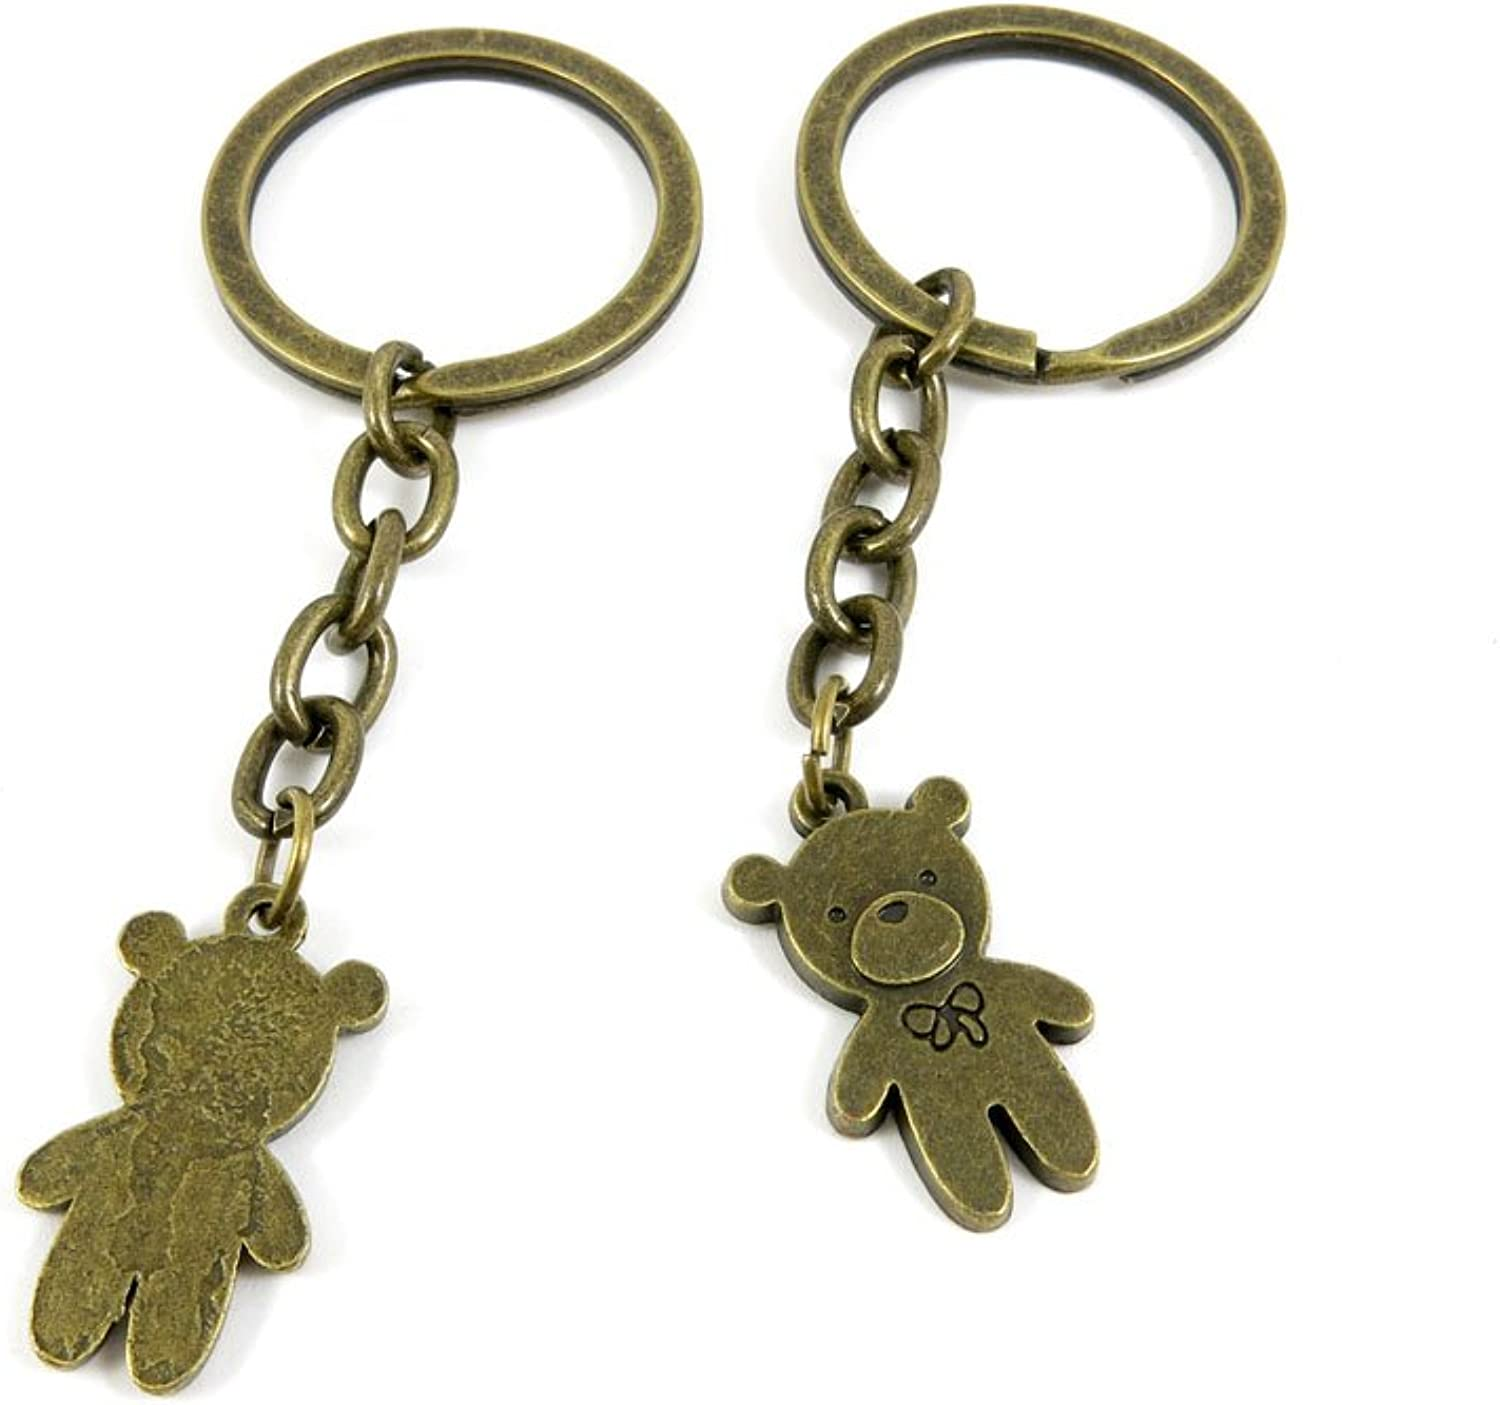 80 PCS Keyring Car Door Key Ring Tag Chain Keychain Wholesale Suppliers Charms Handmade A5NA1 Teddy Bear